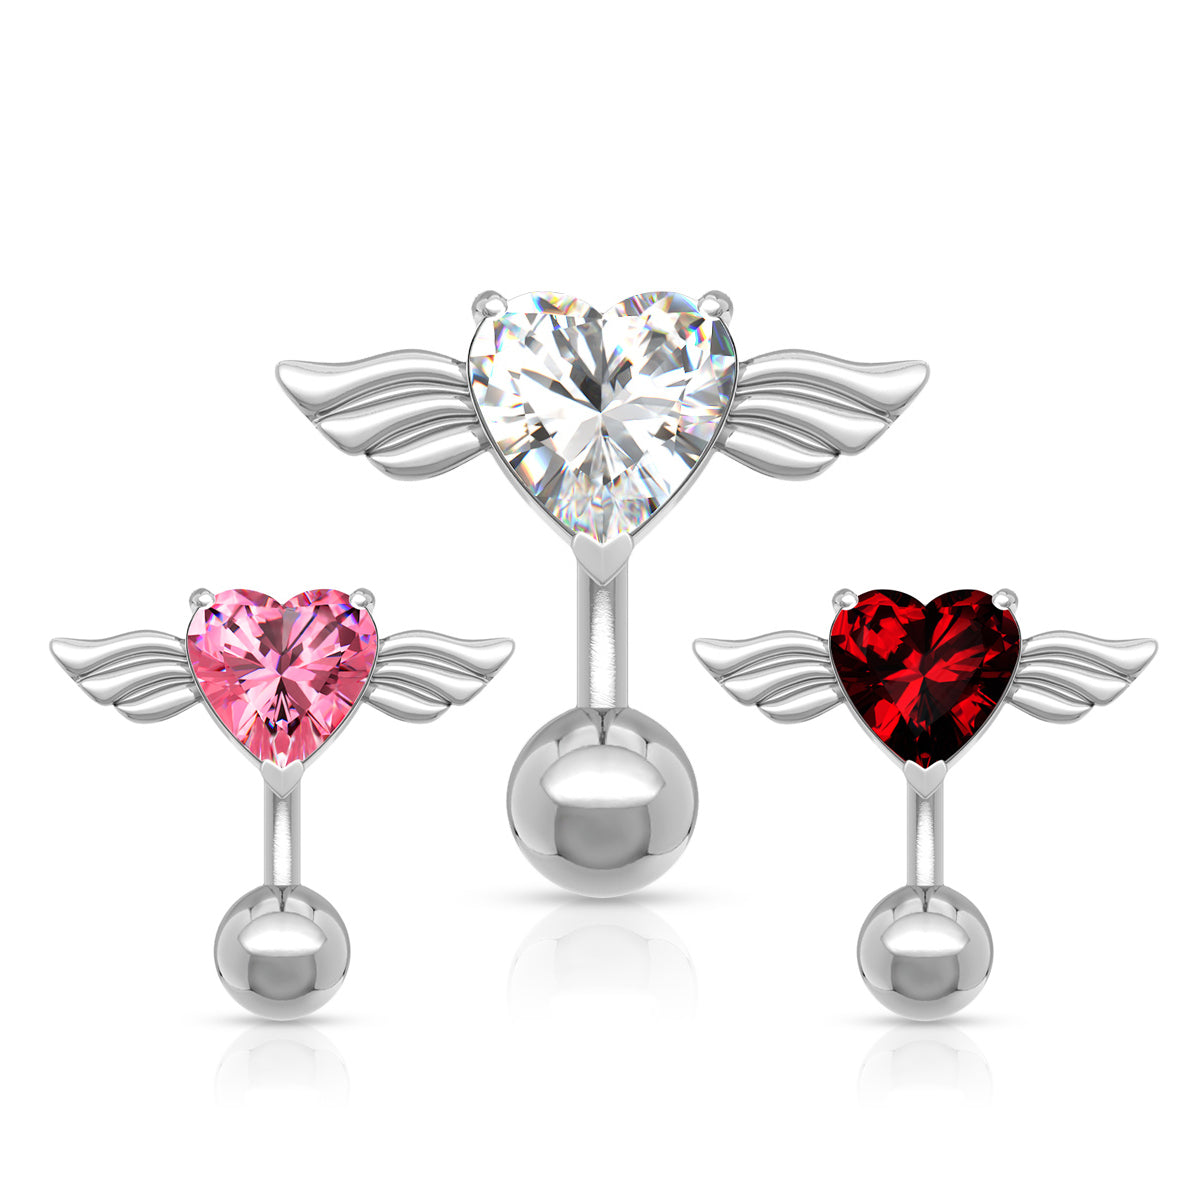 Handmade Piercing wing Belly Ring Navel Jewelry Belly ring,angel Belly Button Jewelry,hearts belly ring Navel Piercing Ring